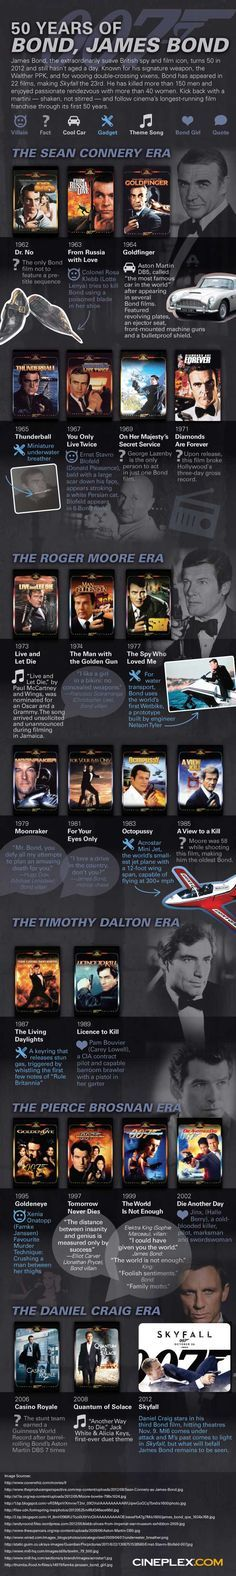 Celebrate 50 years of James Bond/007 with our infographic